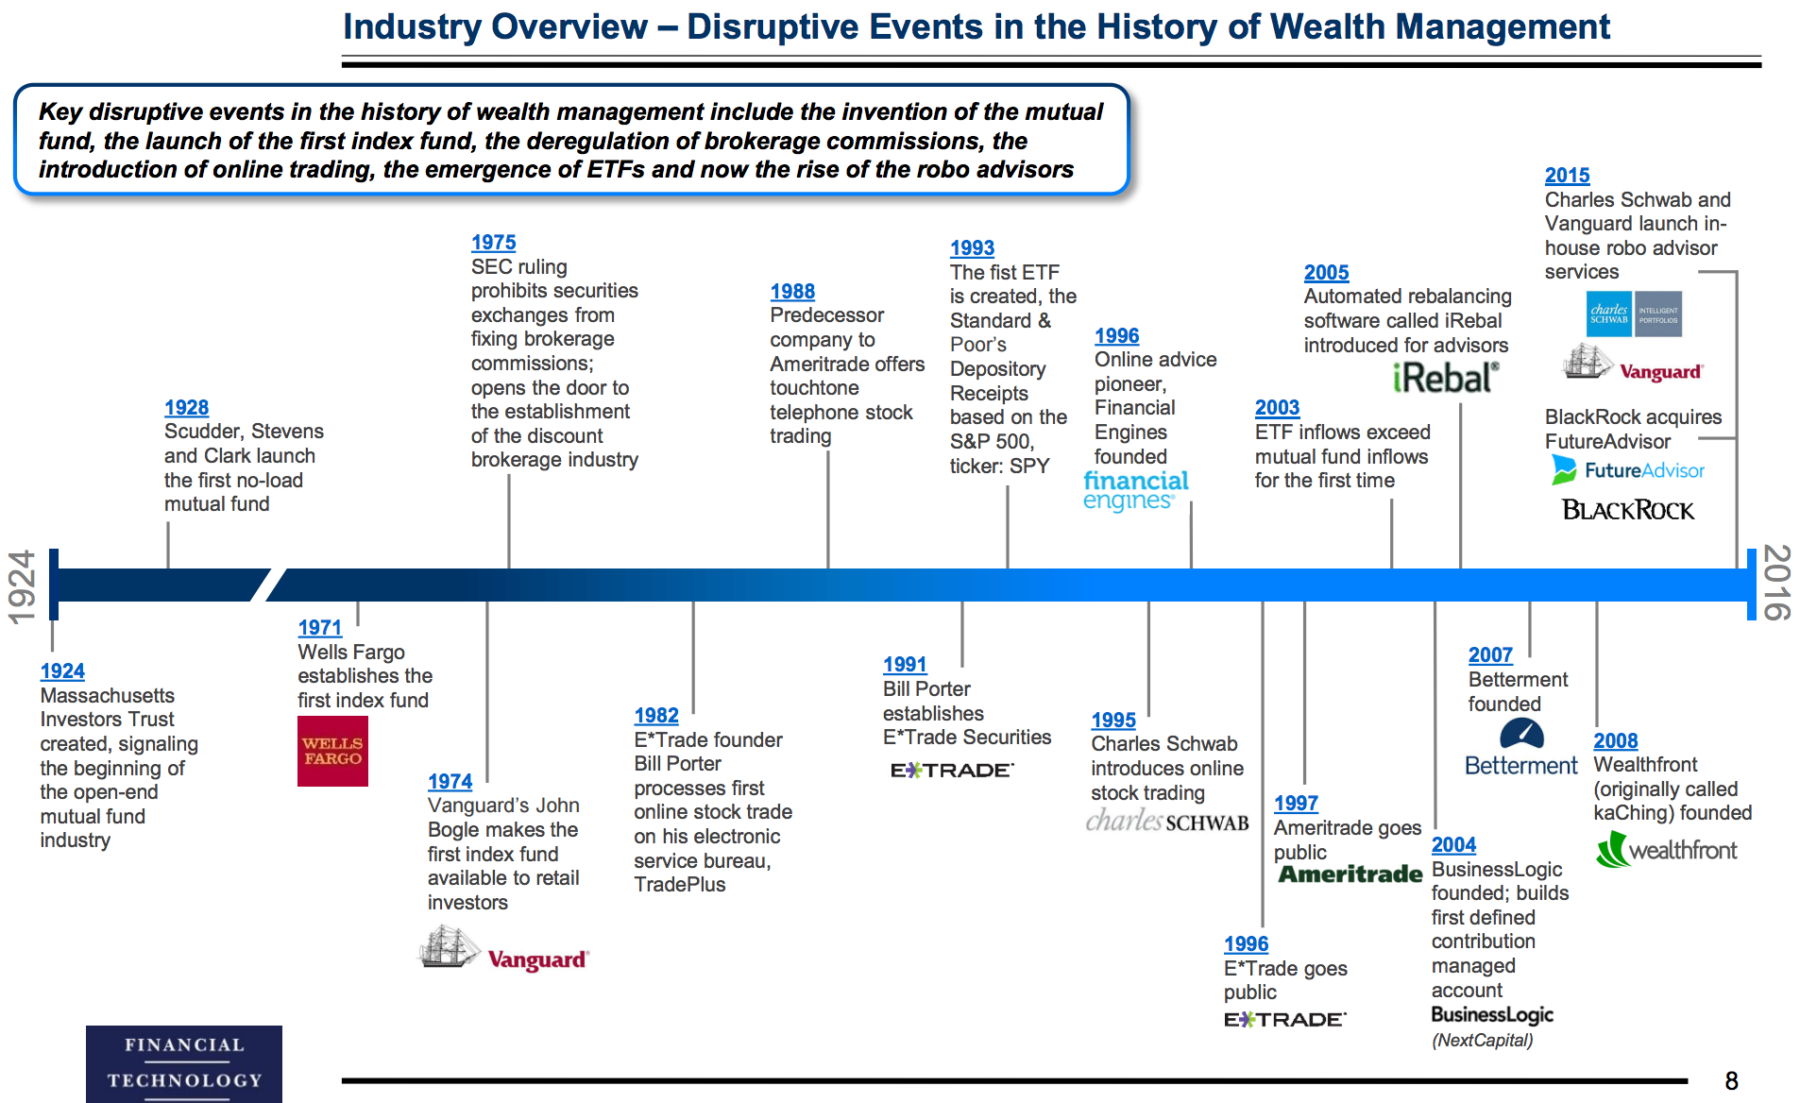 Mahor Technology Management: Disruptive Events In The History Of Wealth Management